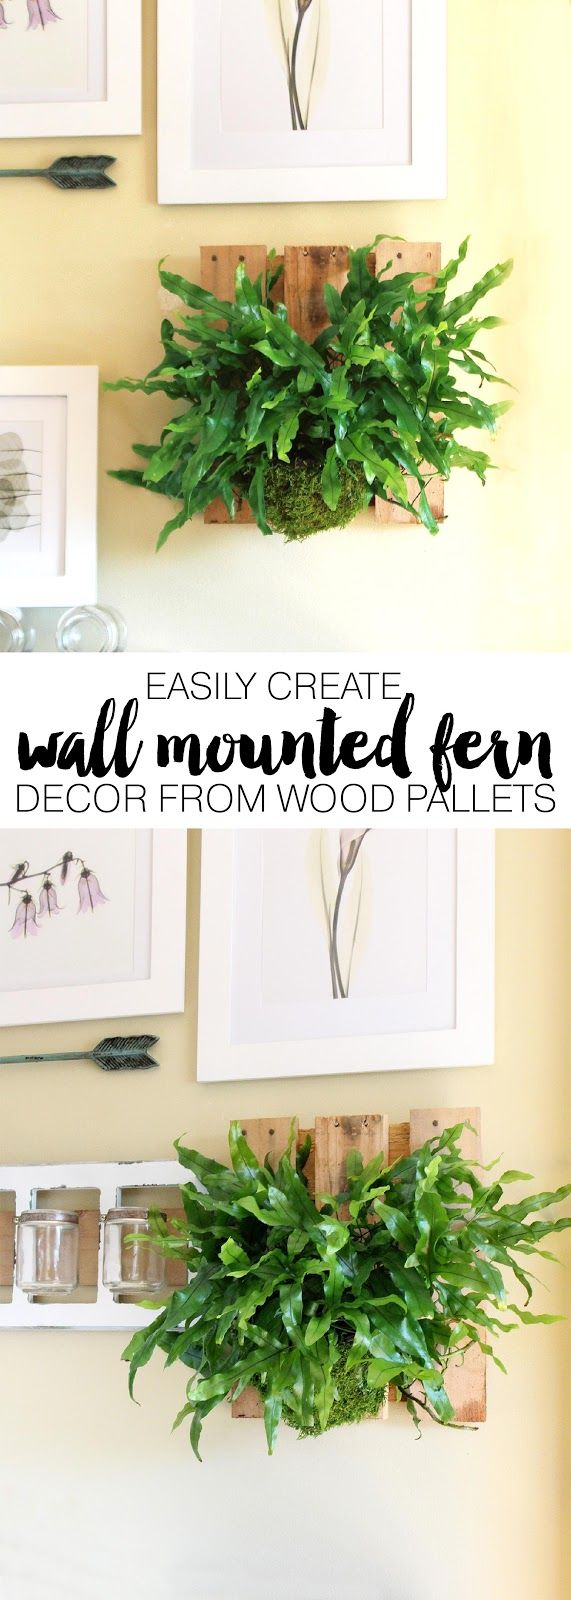 Using a recycled wood pallet to mount a kangaroo paw fern couldn't be easier. I'll show you a simple way to mount a kangaroo or staghorn fern to dress up your wall decor.